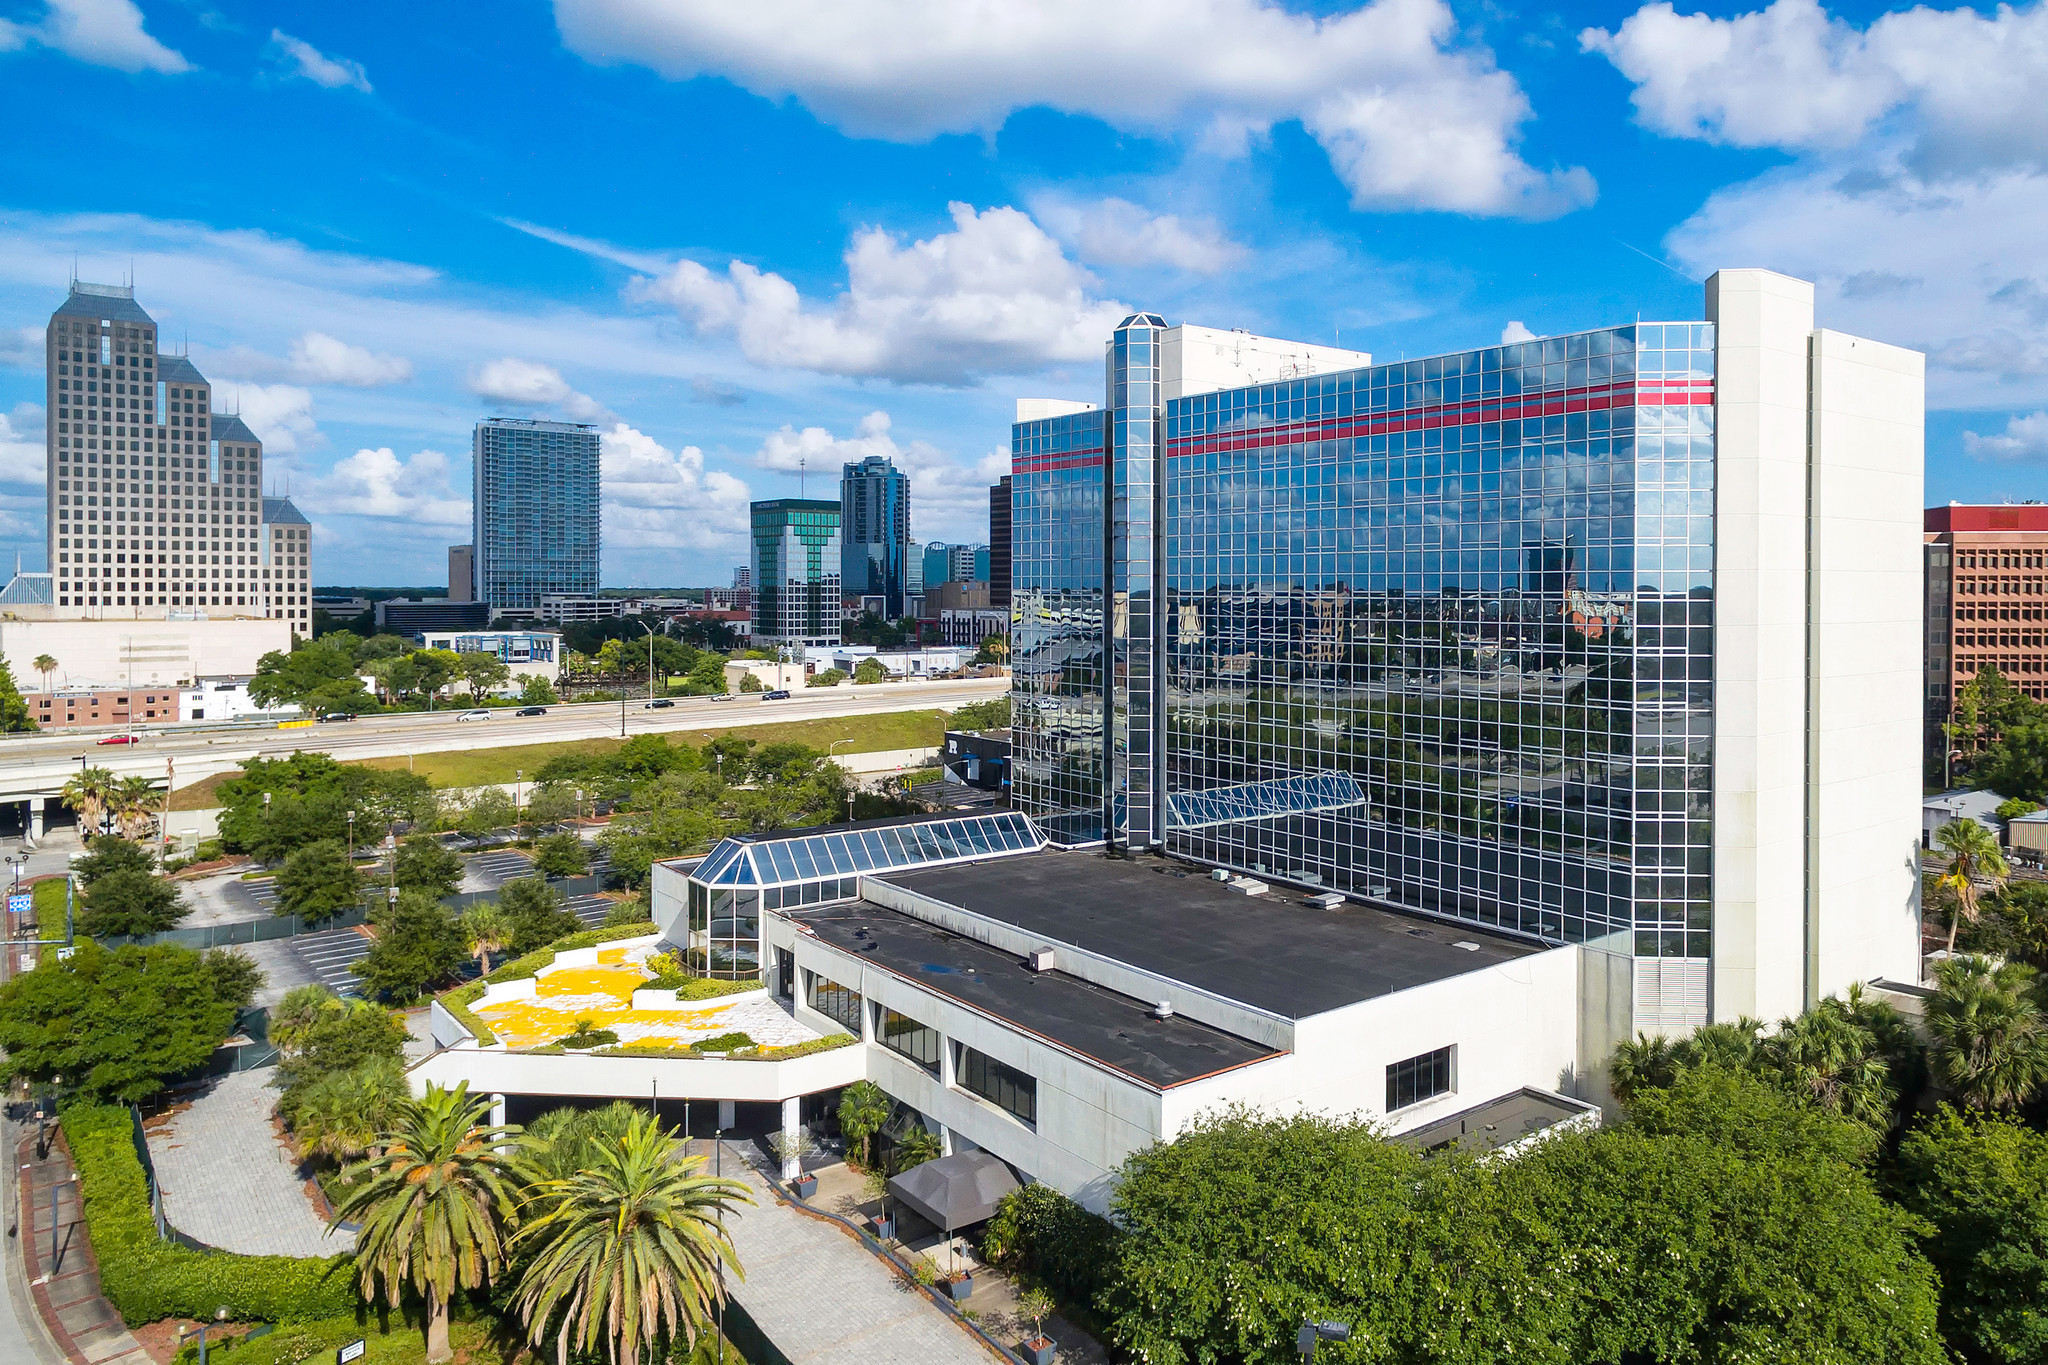 Patel Auction Update New York Firm Plans Downtown Hotel Renovation Orlando Sentinel